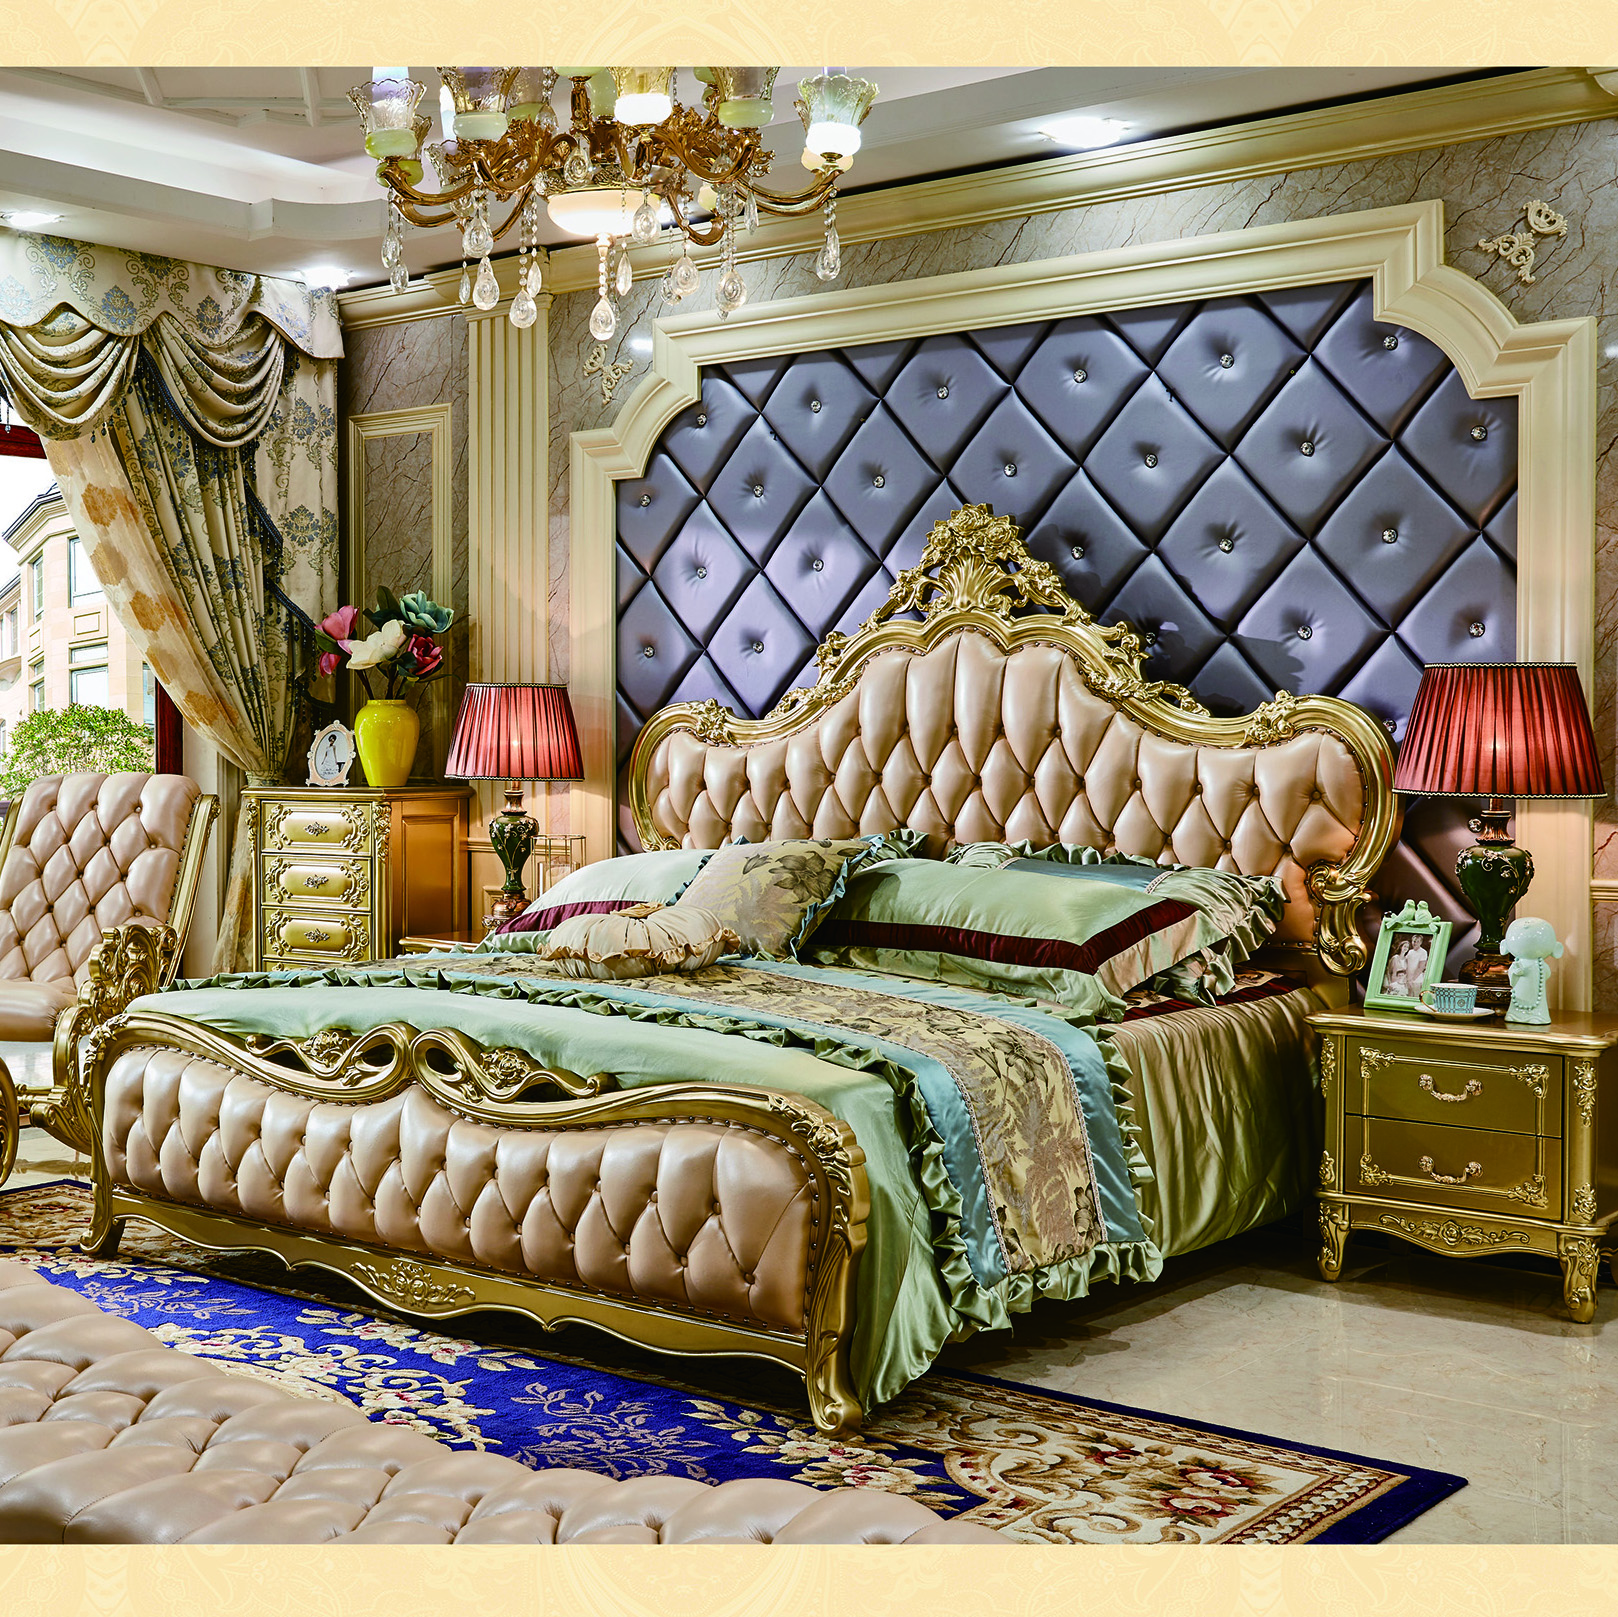 Classic Luxury Carve Design Leather Bed King Size For Sale Beds Aliexpress